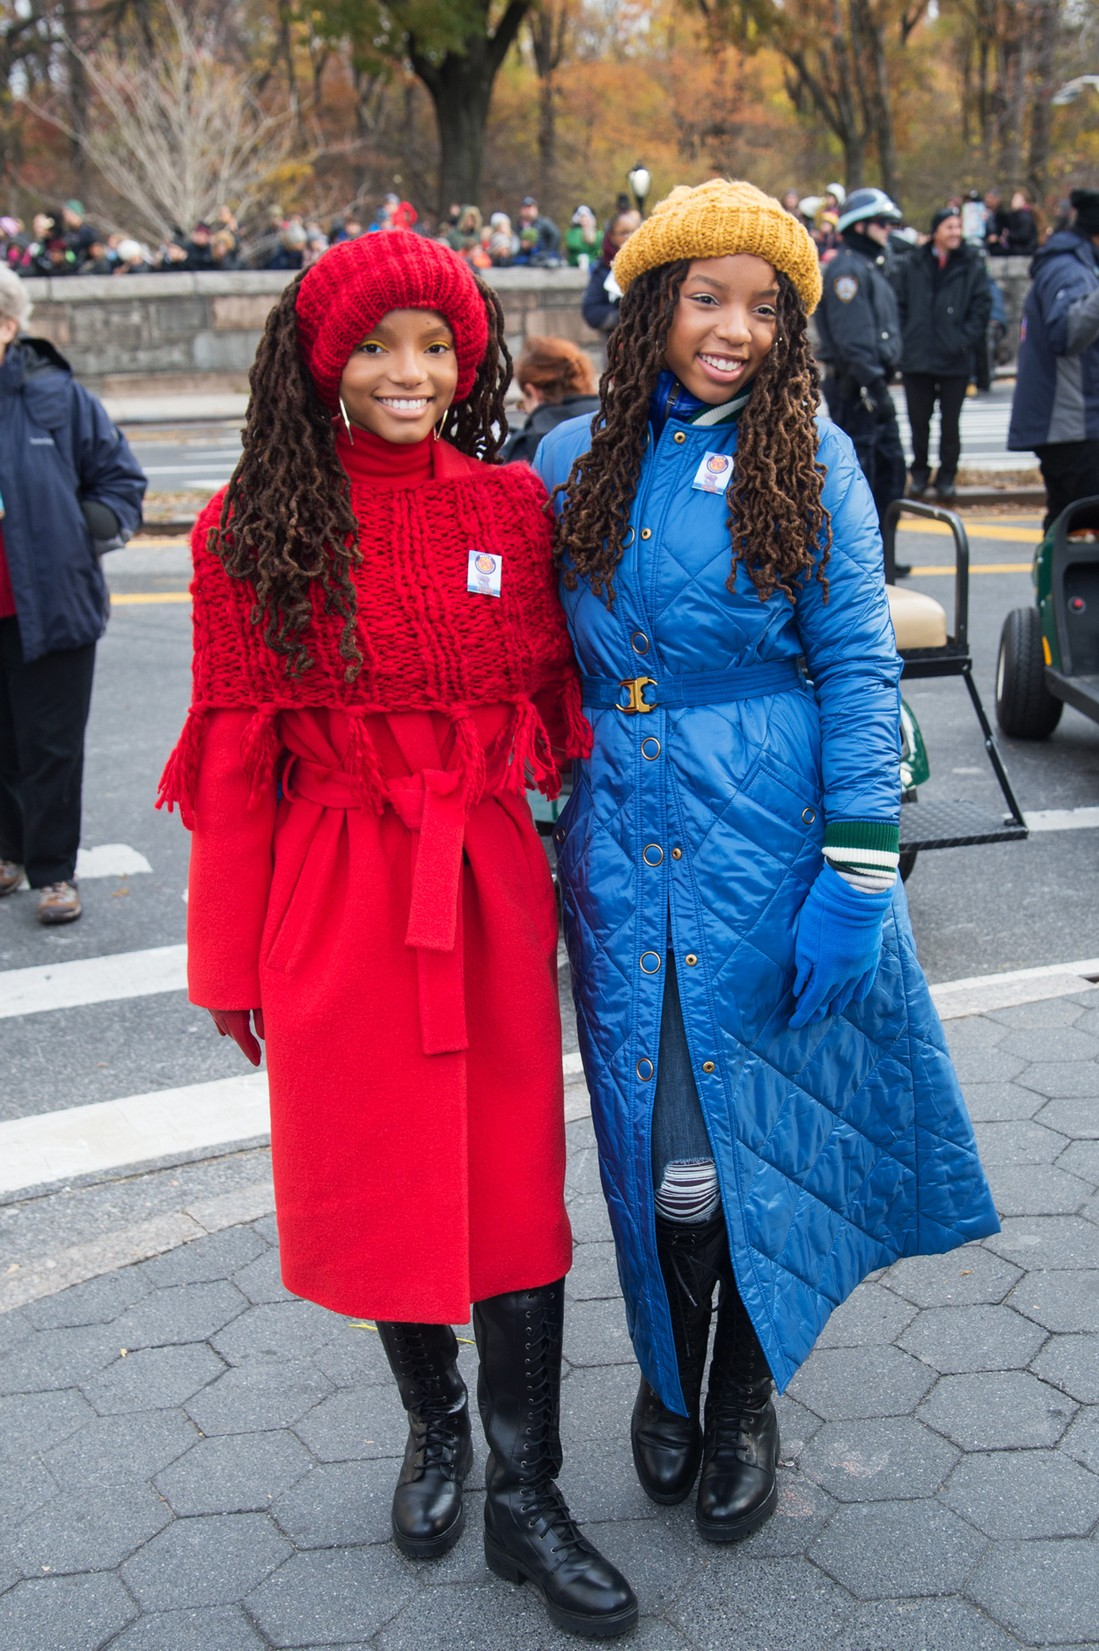 Chloe and Halle attends the 90th Annual Macy's Thanksgiving Day Parade on Nov. 24, 2016 in New York City.